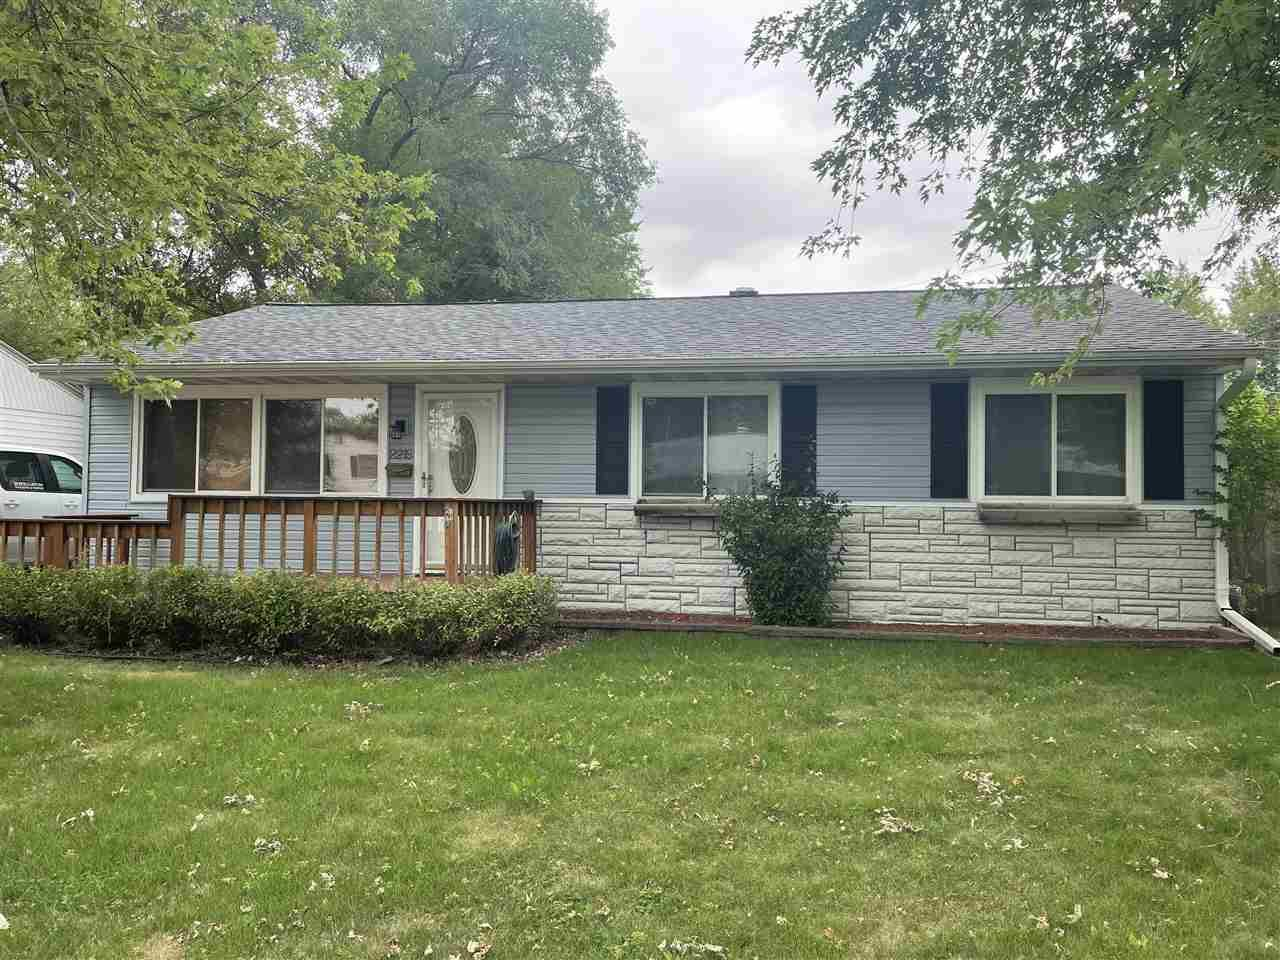 2219 Frontier Rd, Janesville, WI 53546 - #: 1916137